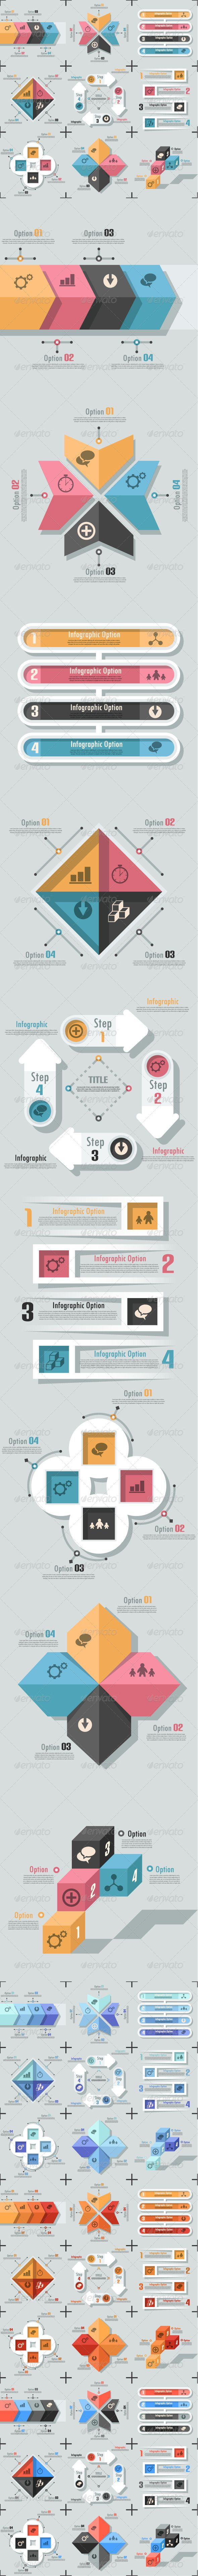 Set Of 9 Flat Infographic Options Templates #design #infografik Download: http://graphicriver.net/item/-set-of-9-flat-infographic-options-templates/7058119?ref=ksioks